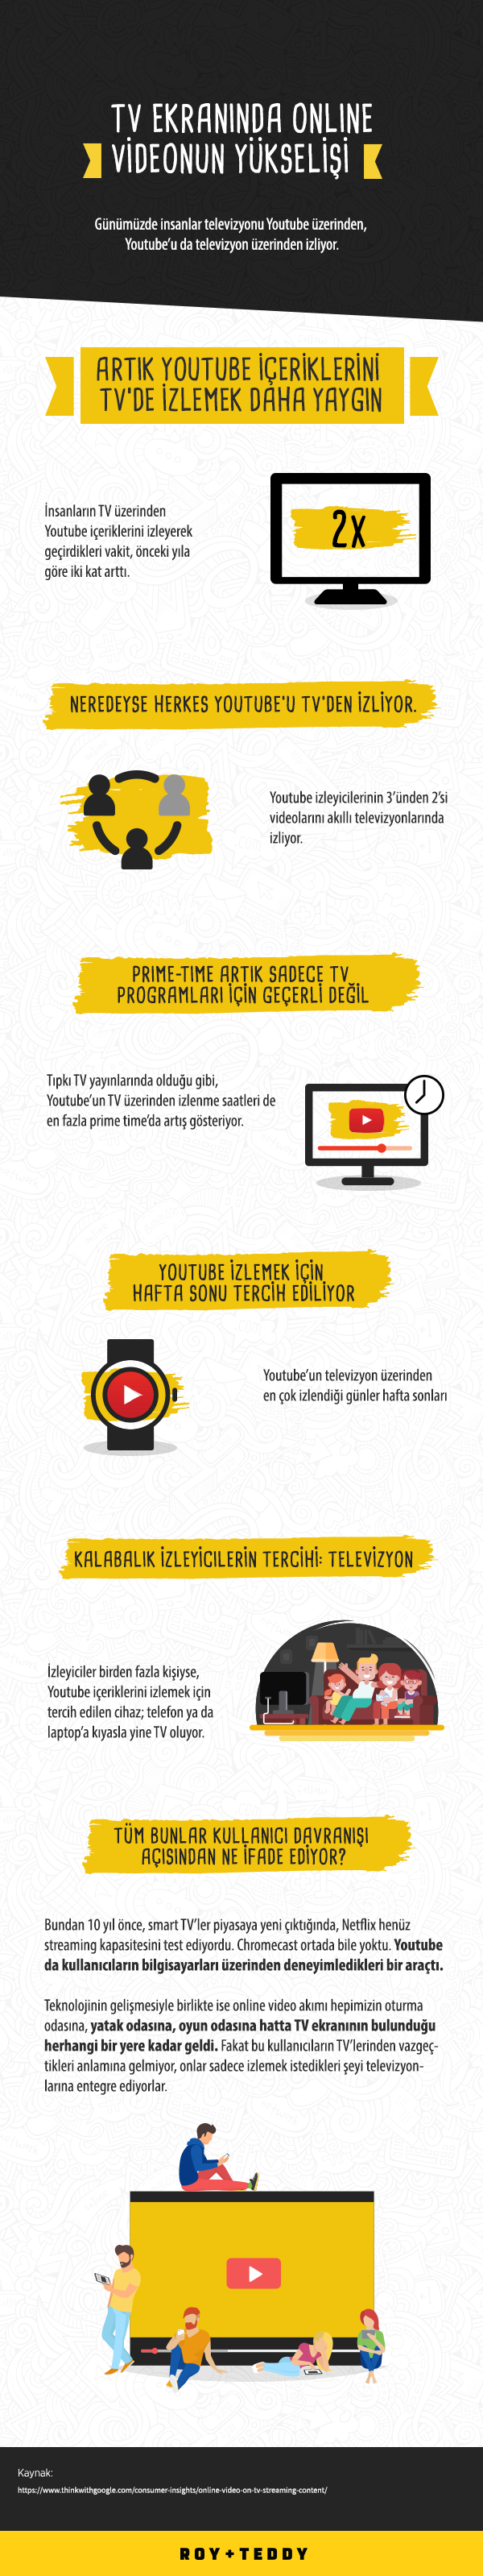 rt_infographic-youtube (3)